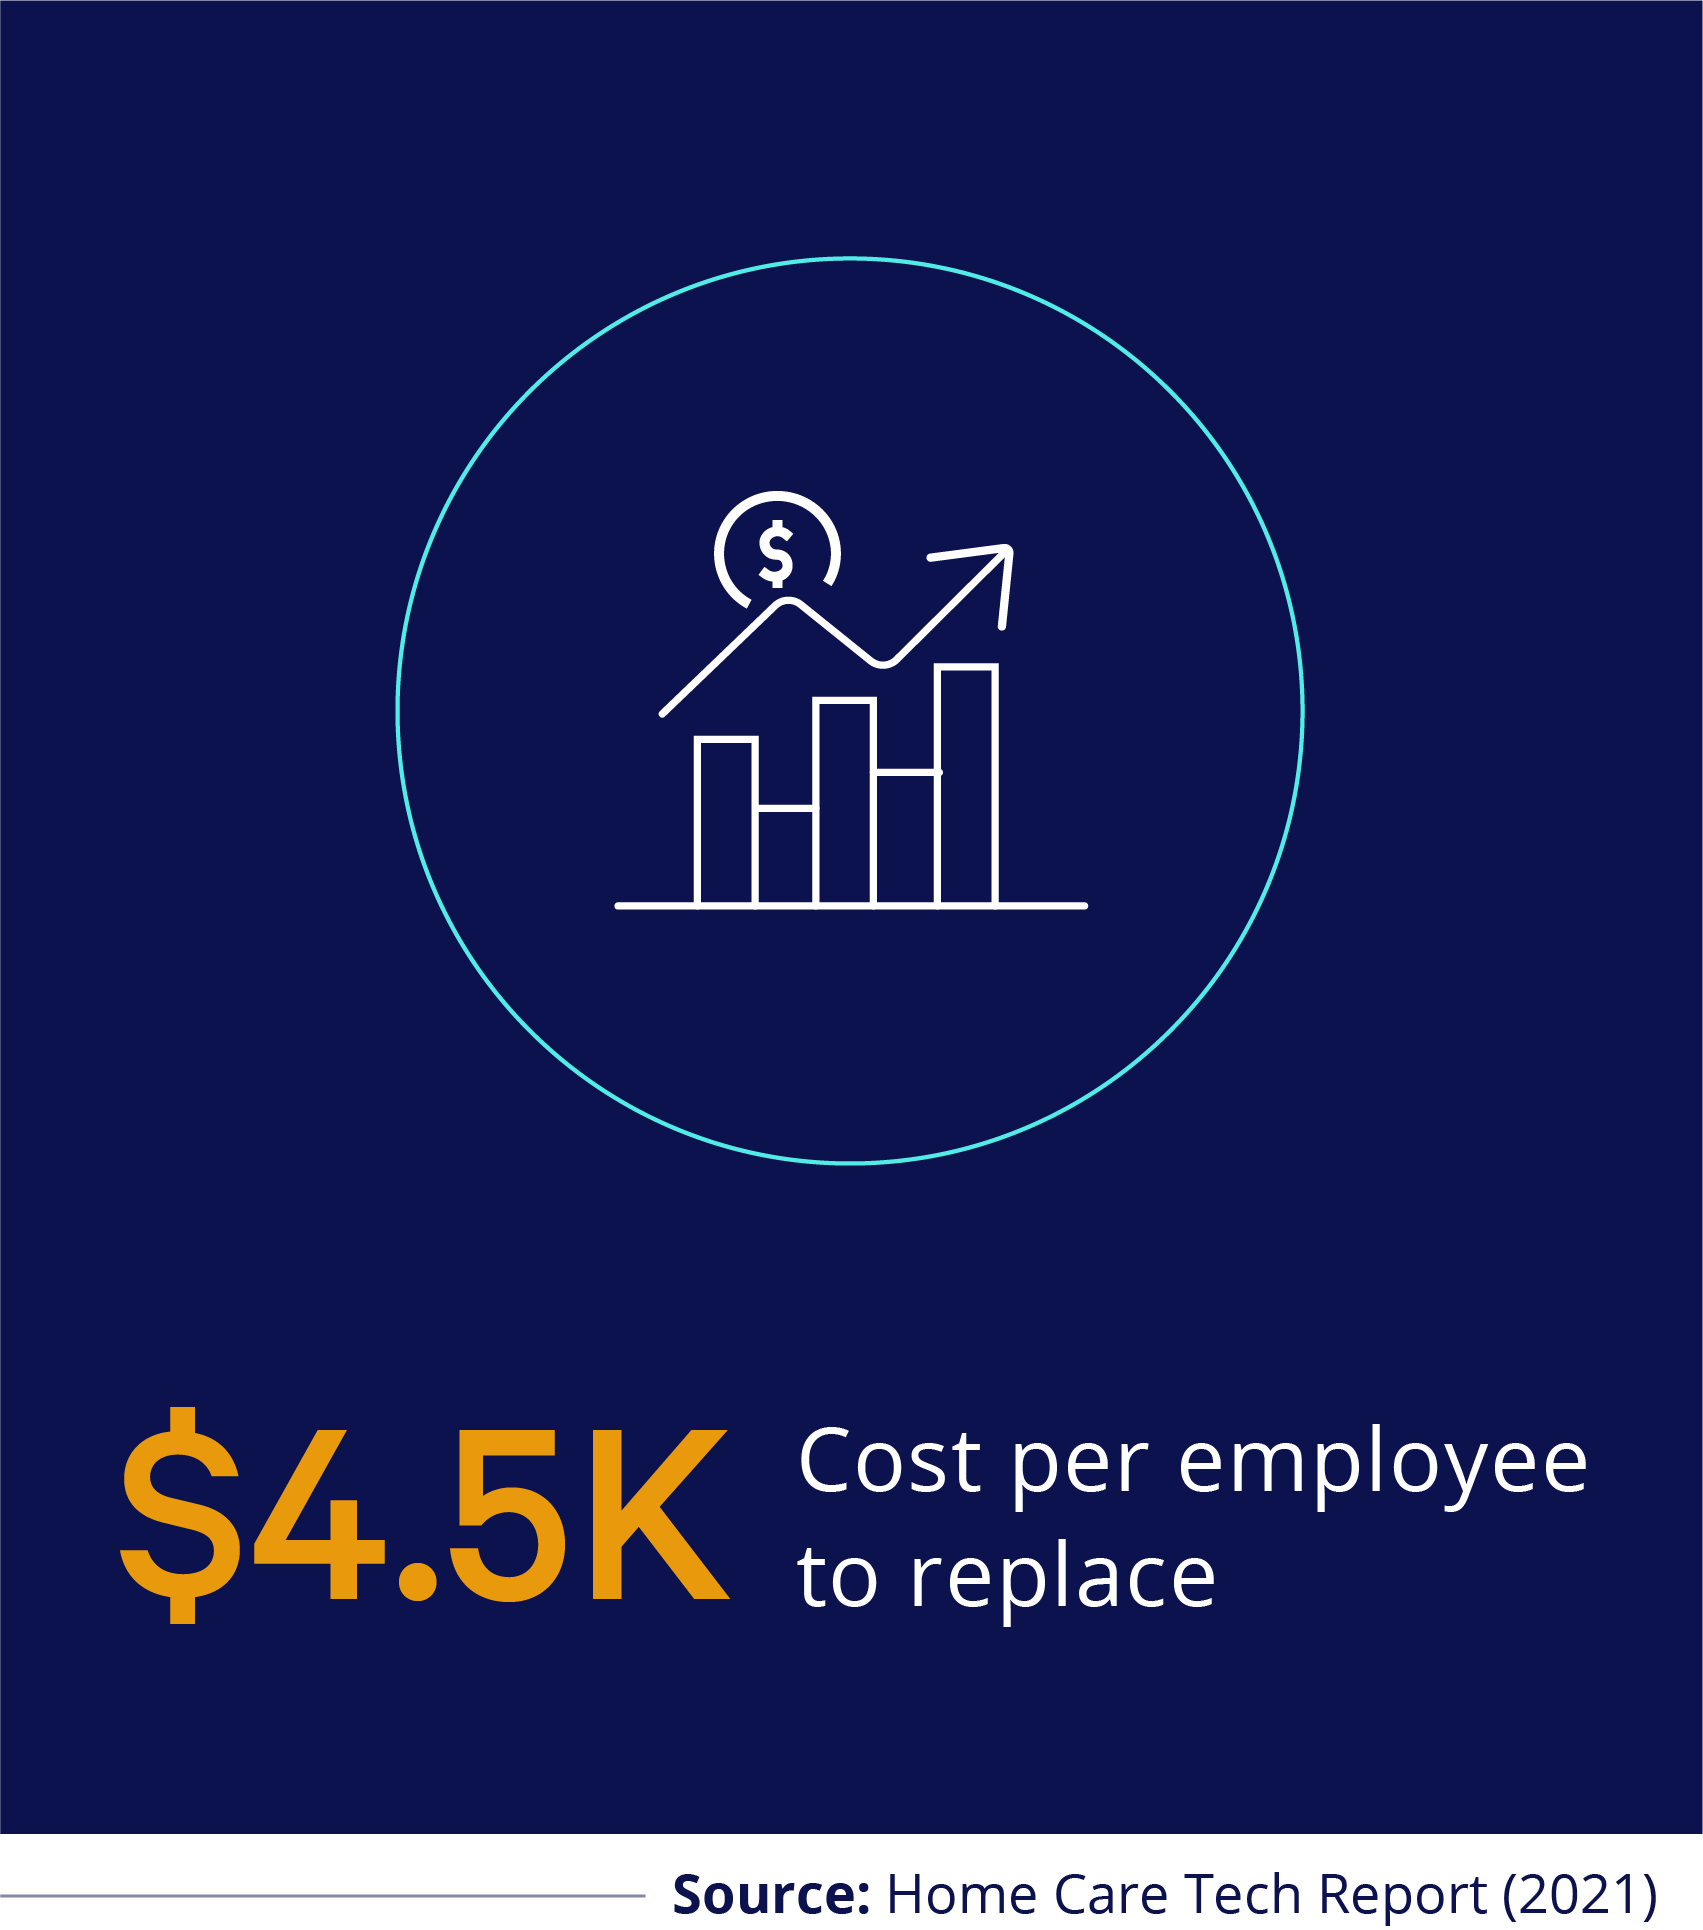 4.5k cost per employee to replace